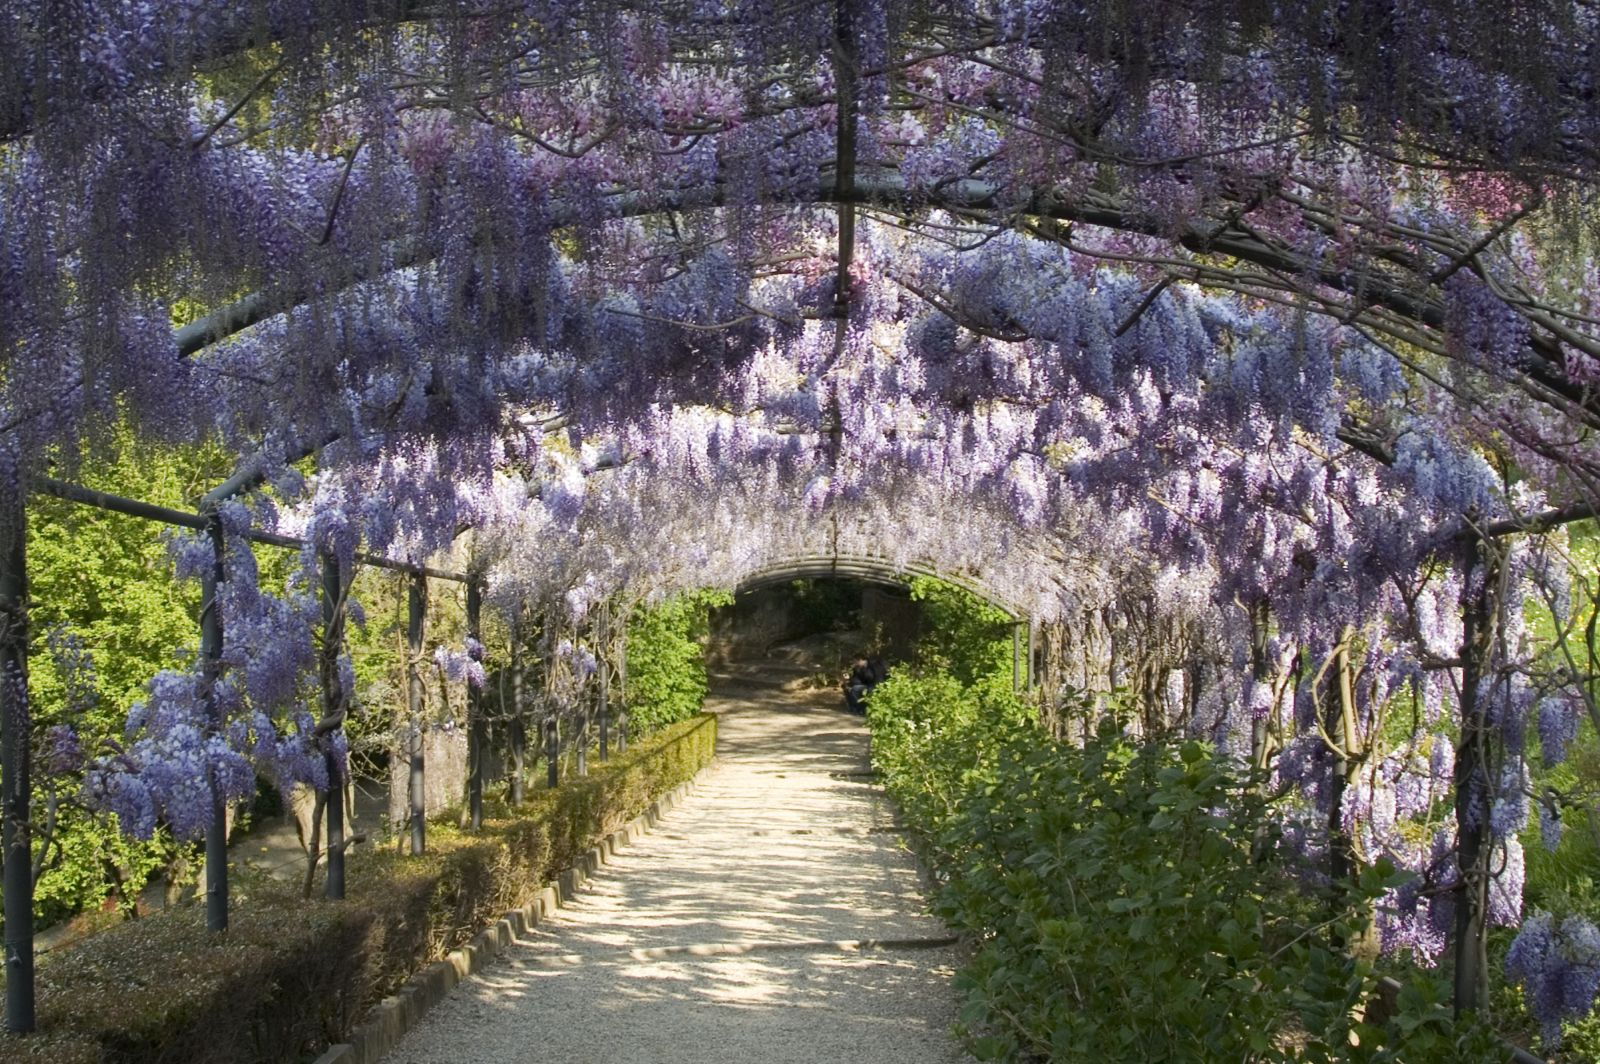 Temperate climate permaculture permaculture plants wisteria for The wisteria